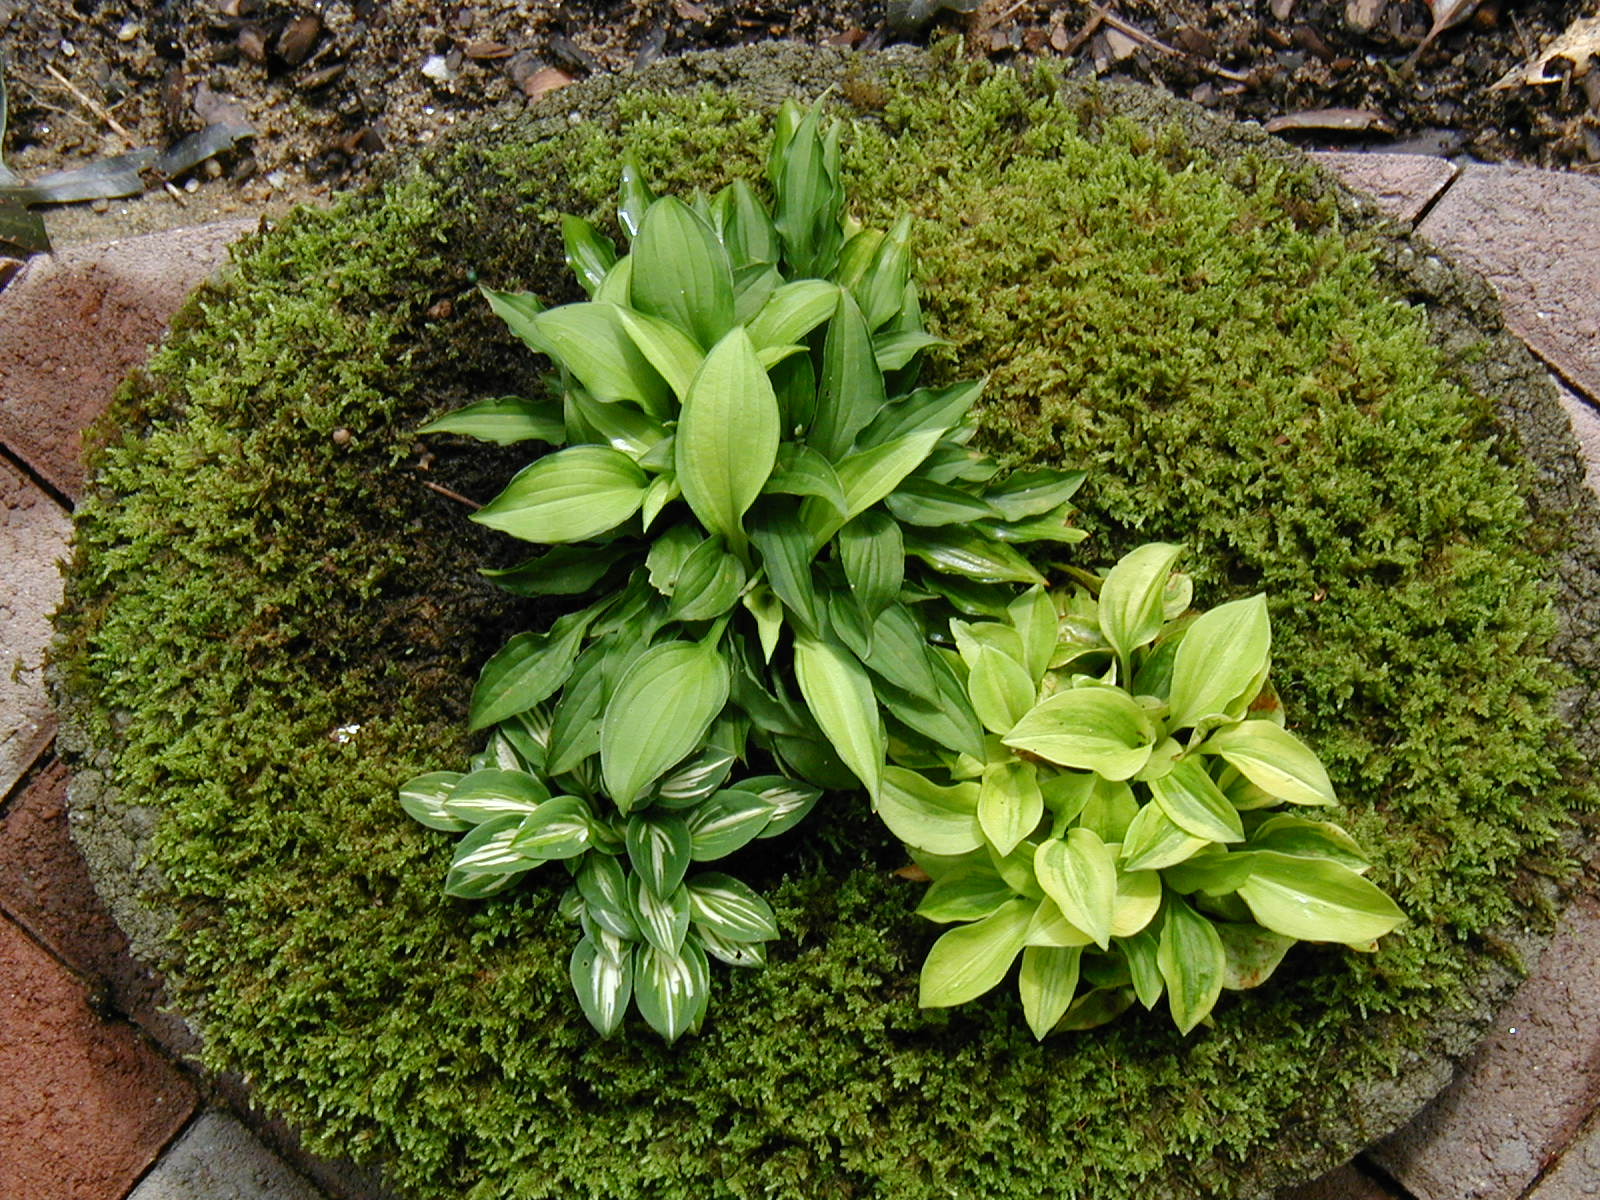 Miniature hostas grown in a container